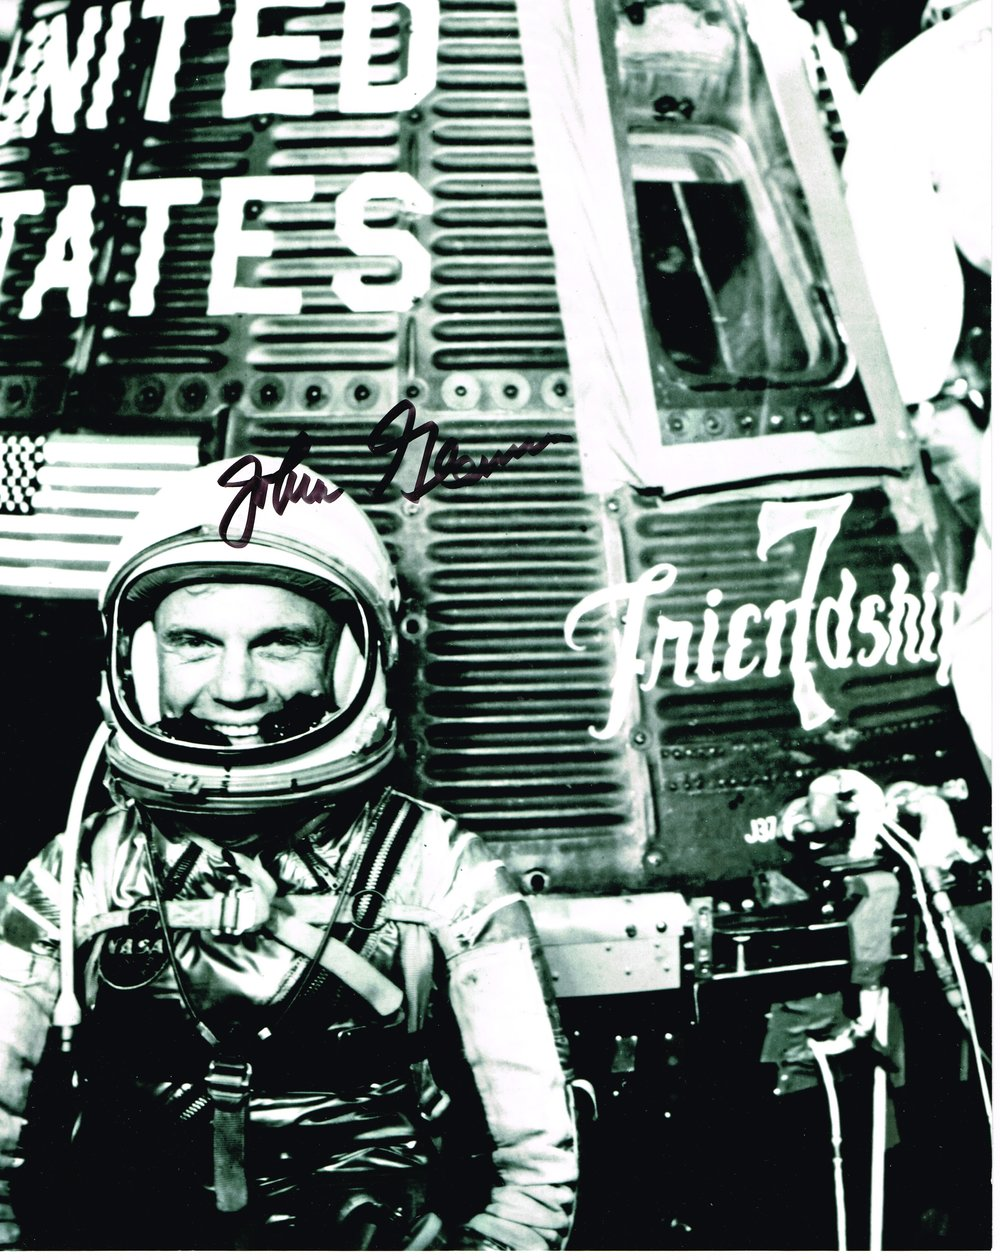 John Glenn Friendship 7 First man to orbit Earth on 20 Feb  1962